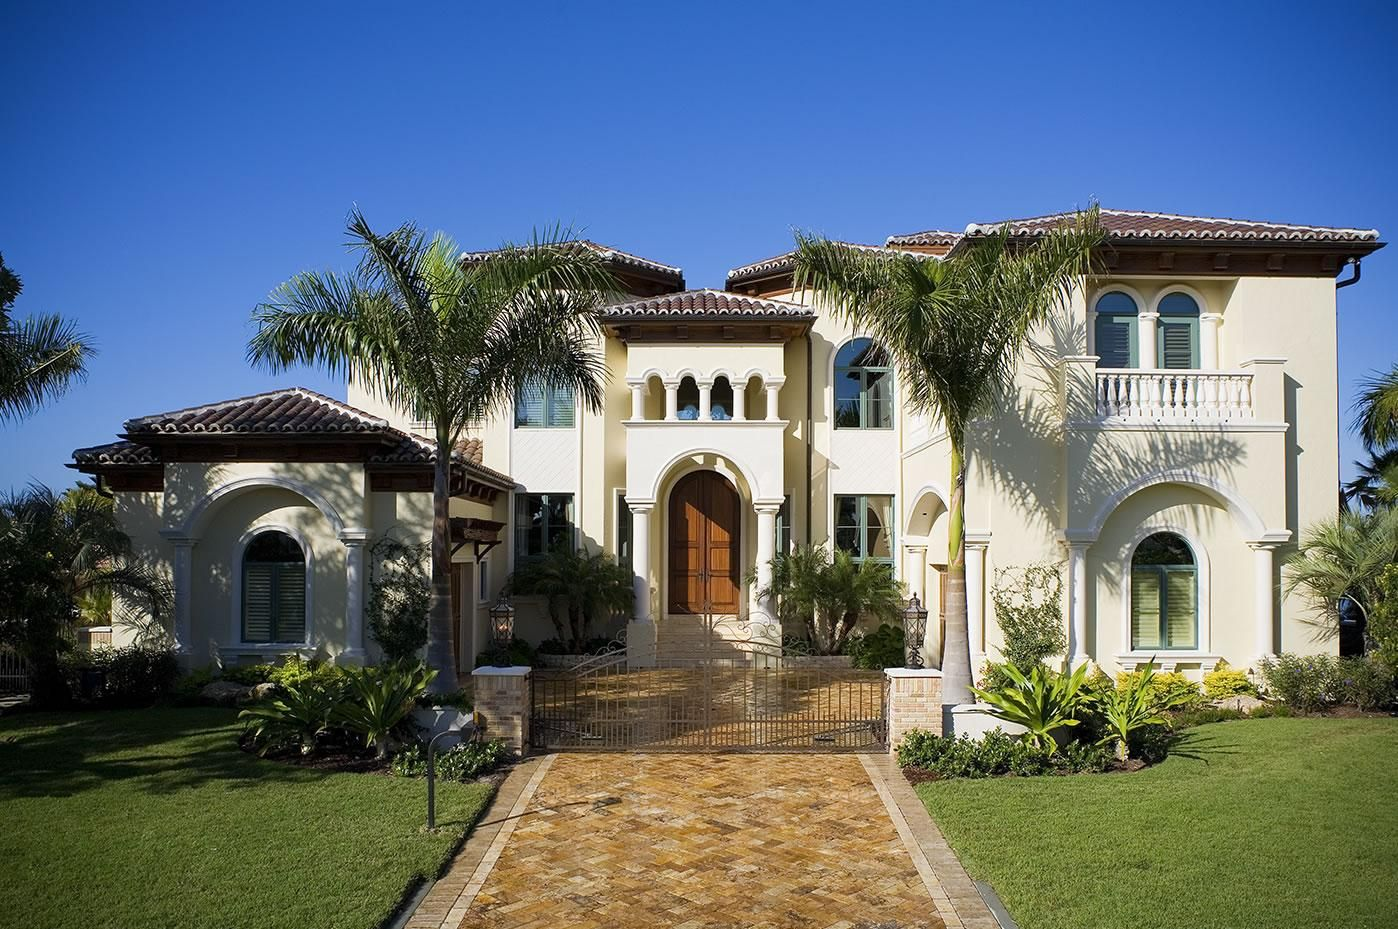 Exterior Mediterranean Houses Luxury Sarasota Mediterranean Houses Inspiration For Home Exterior